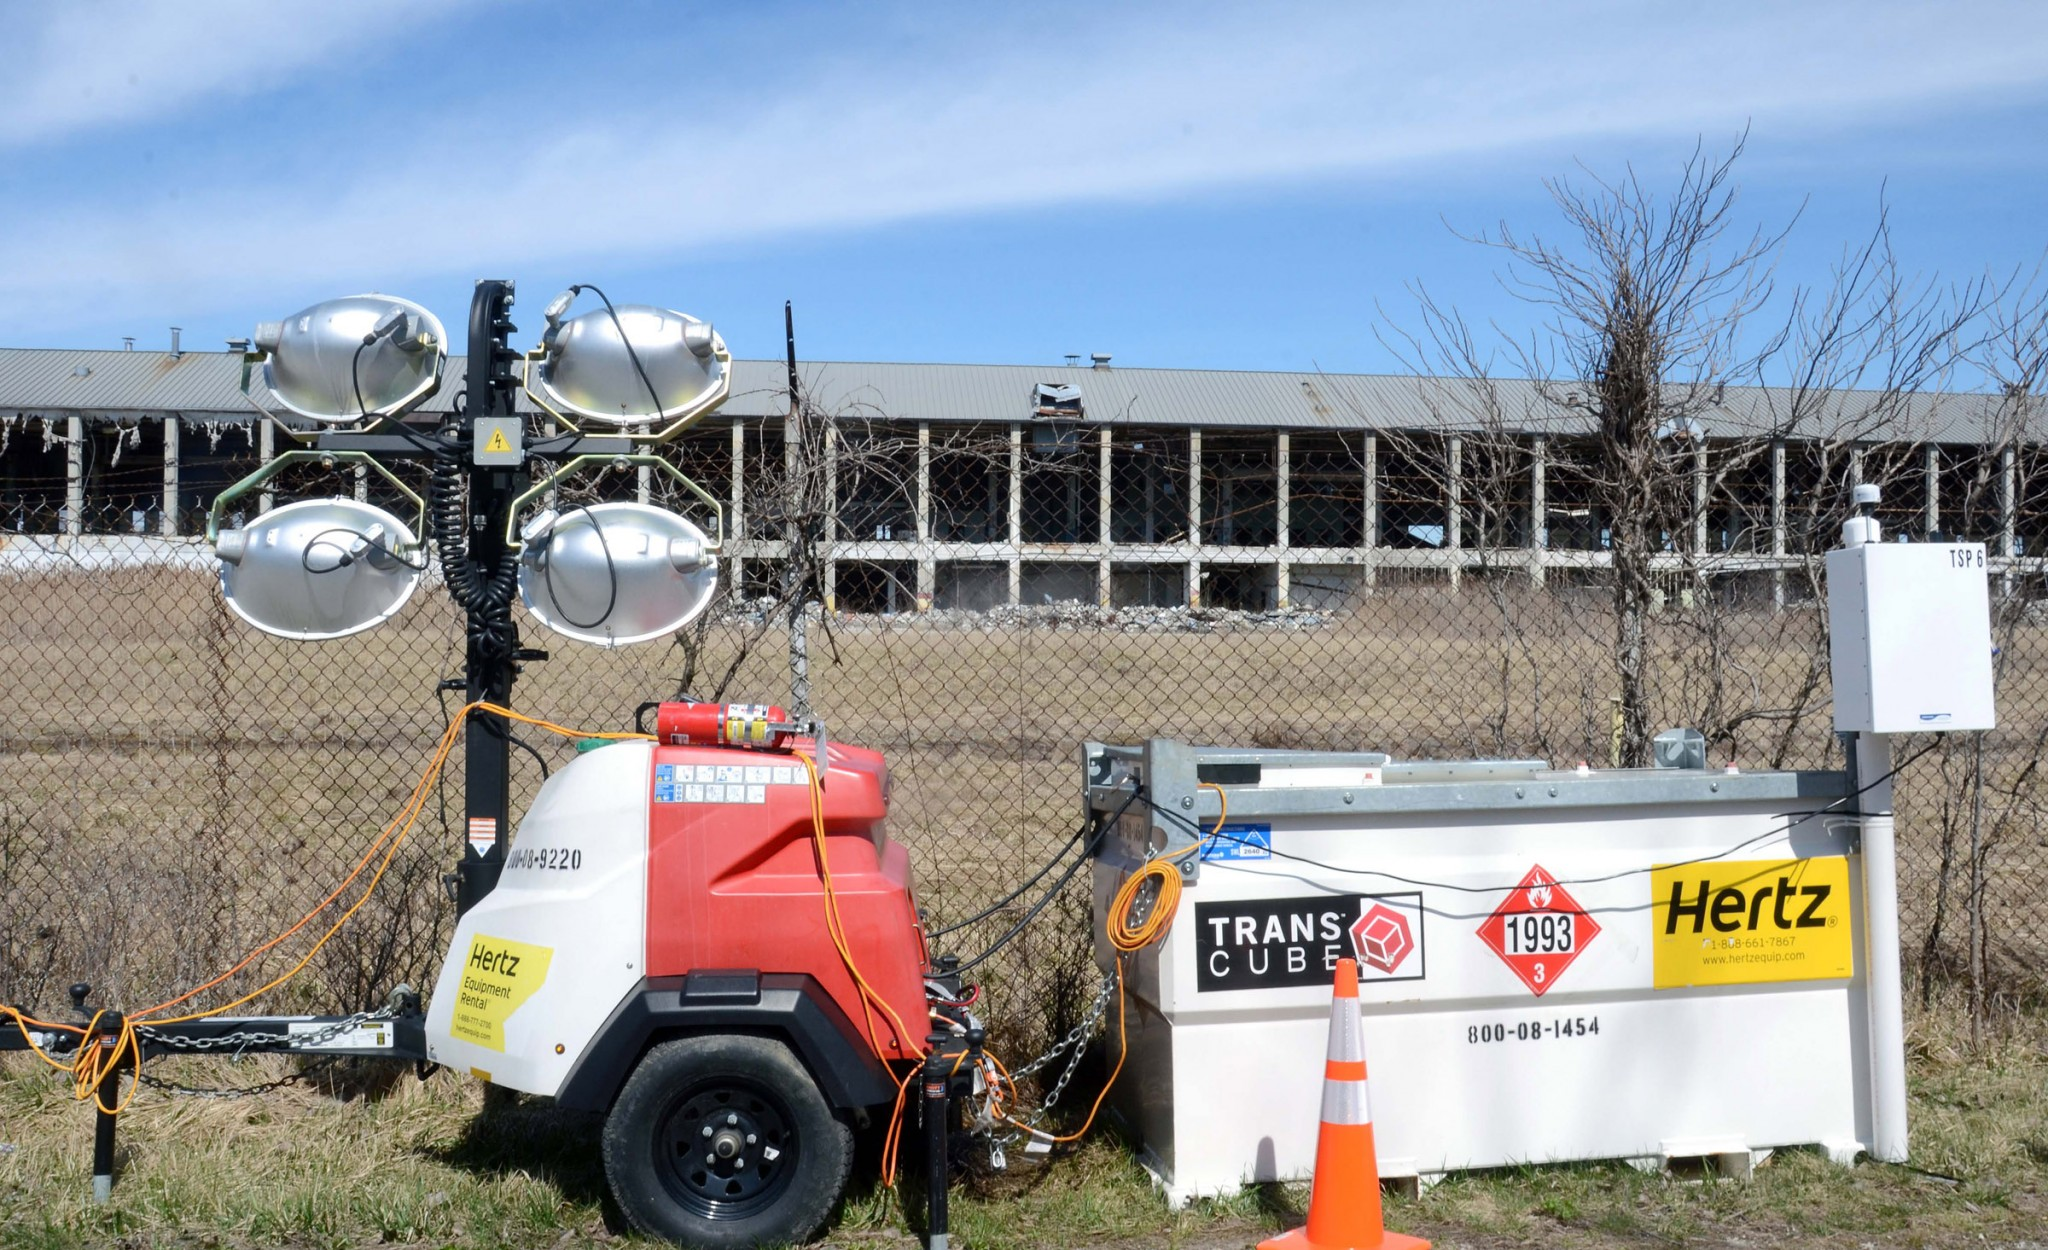 The removal of a former production building at the site will provide better access for excavating contaminated soil, according to the Corps of Engineers. (Press file photo by Ken Grosjean)